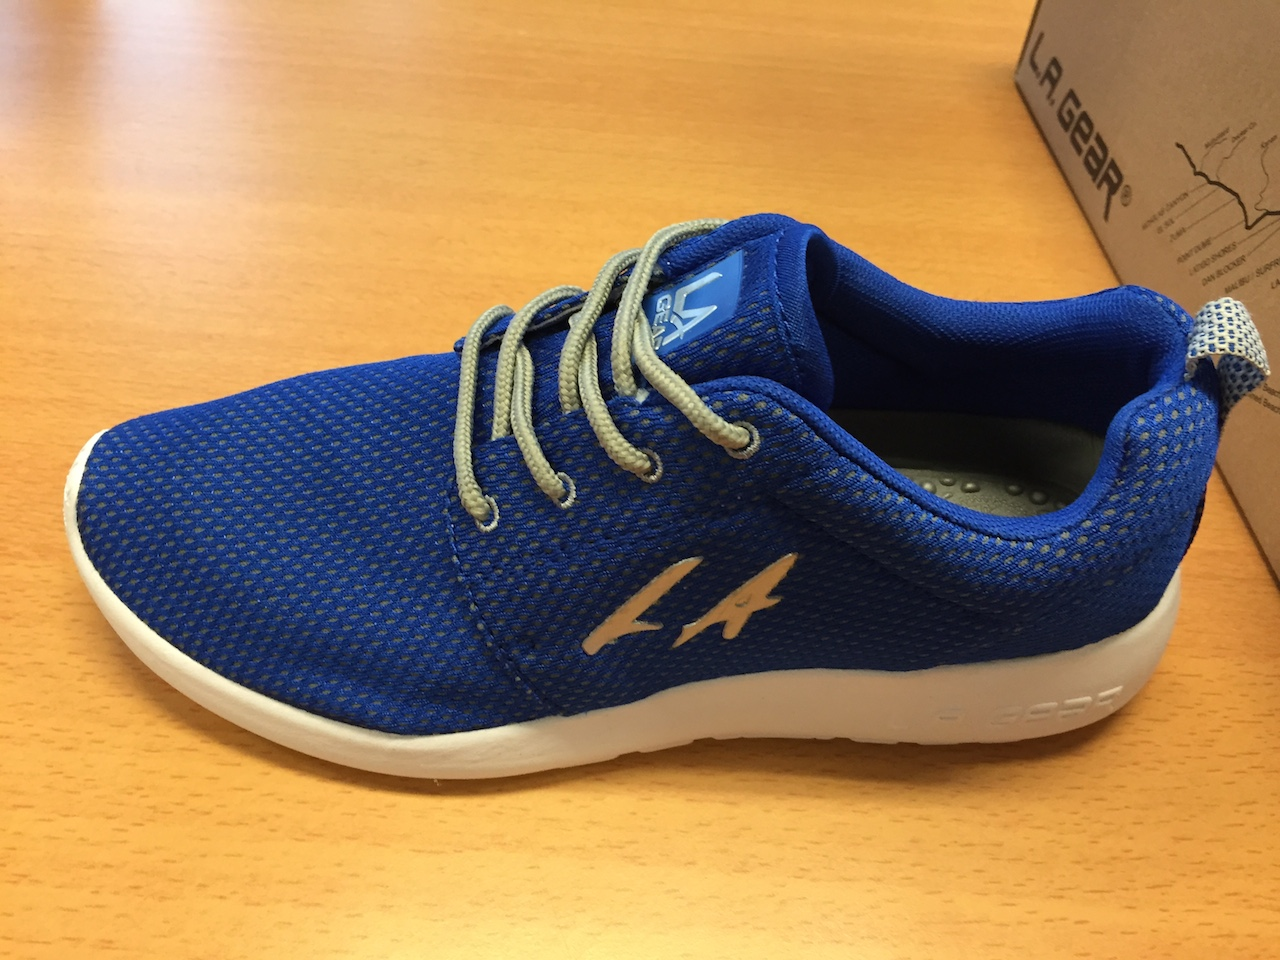 Pme Outlet Branded Sport Shoes - Fashion Stock Wholesale - Stock